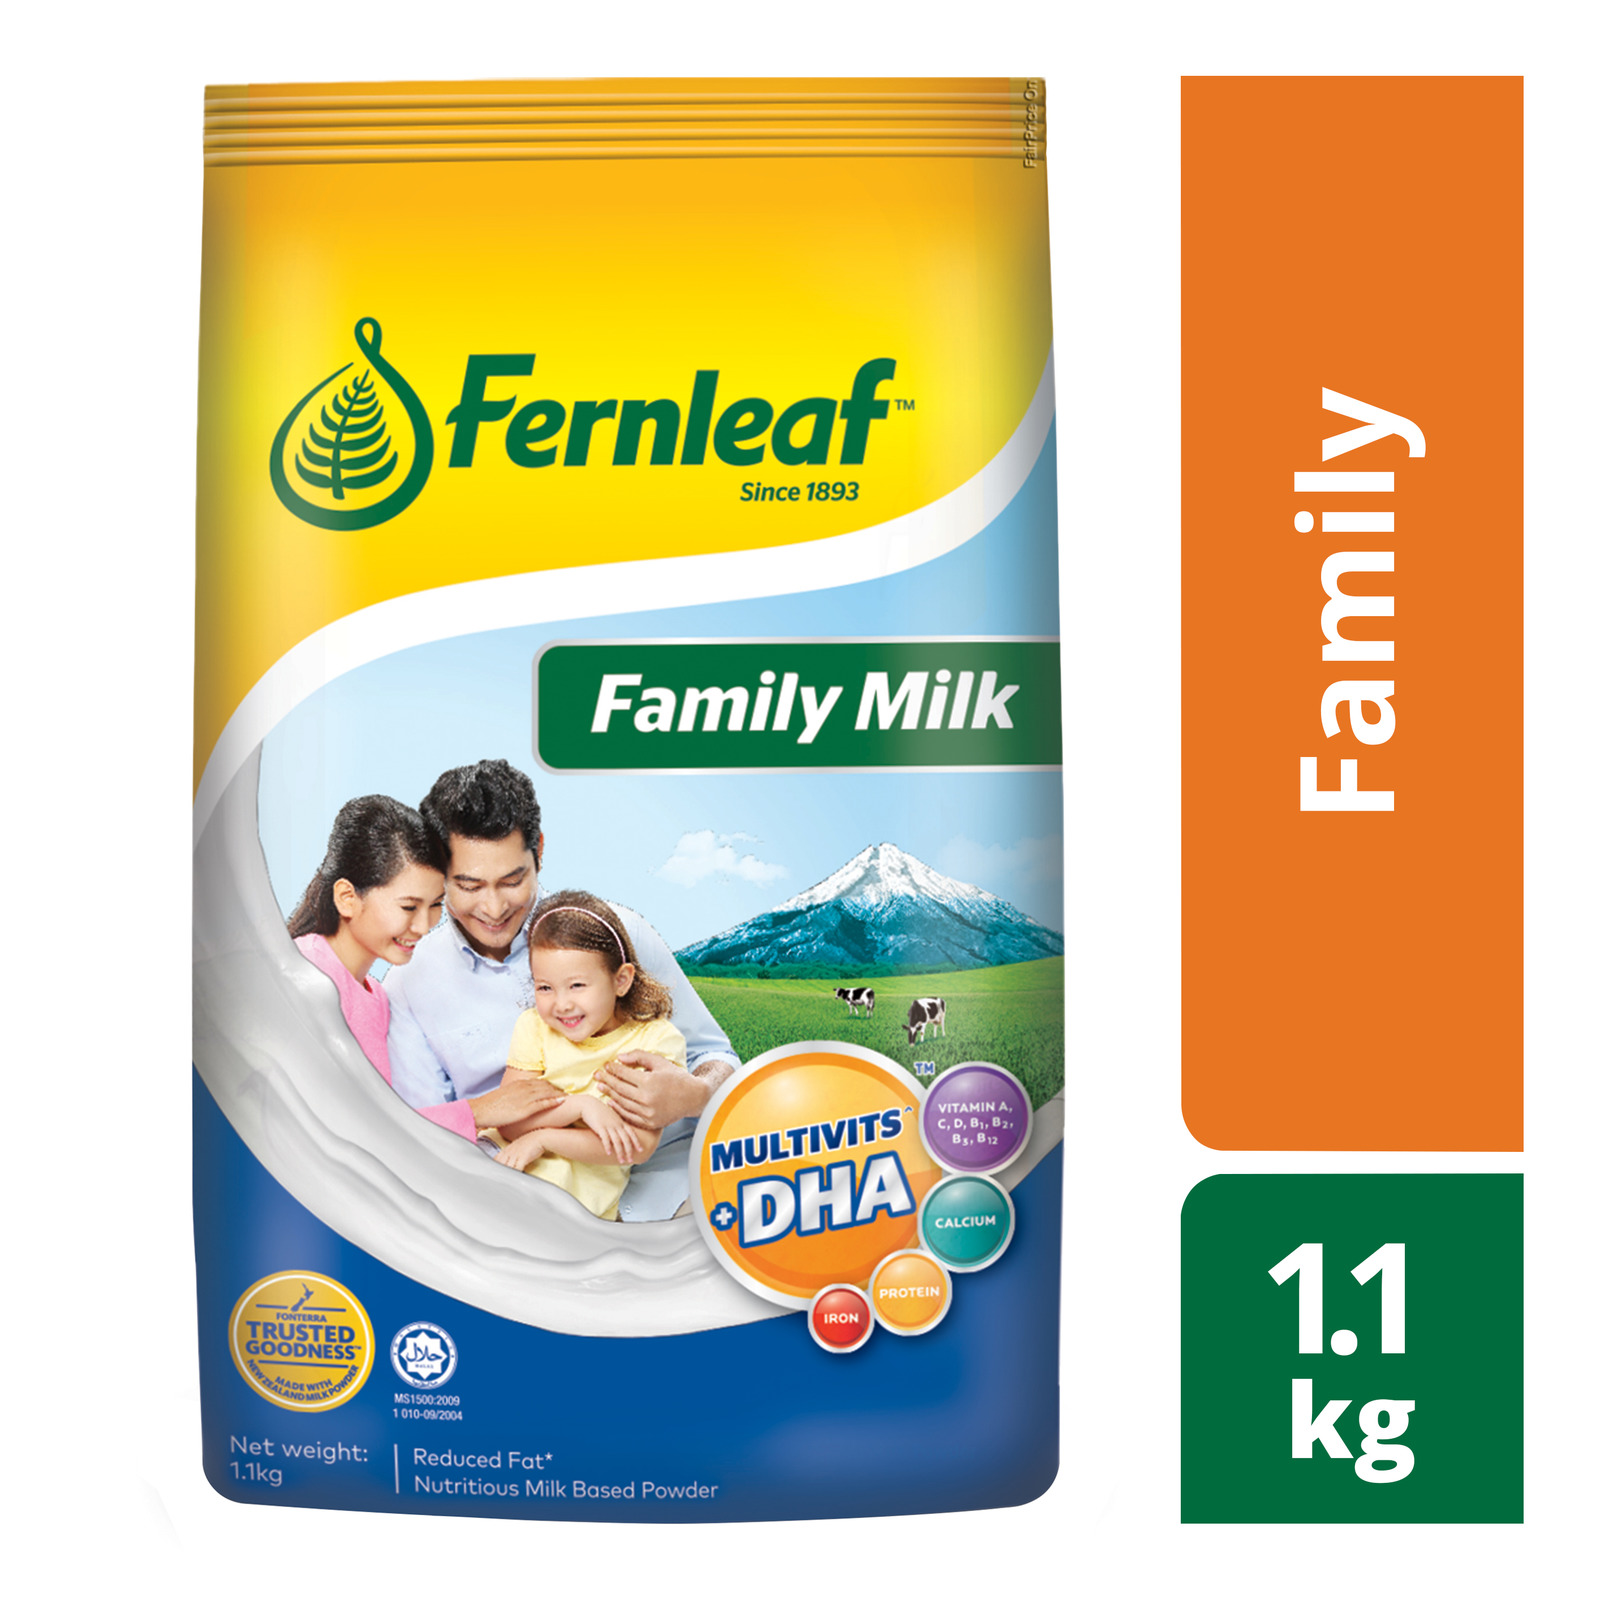 Fernleaf Family Milk Nutritious Milk Powder